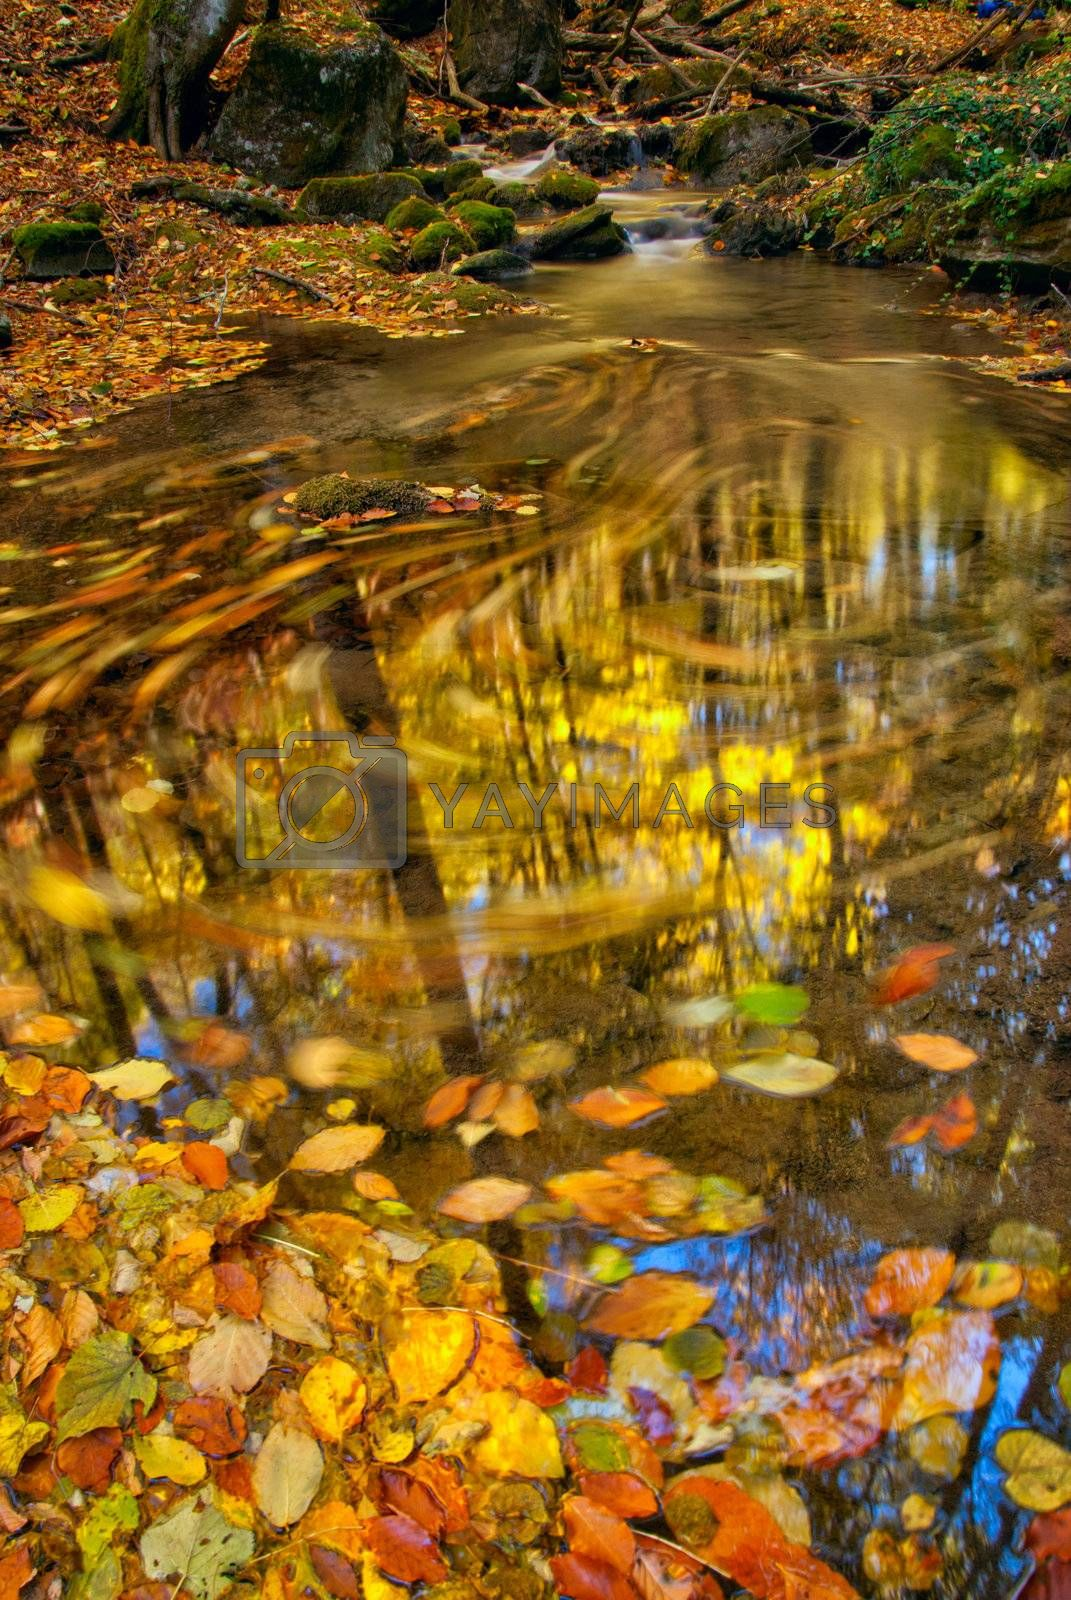 Royalty free image of Autumn stream by firewings